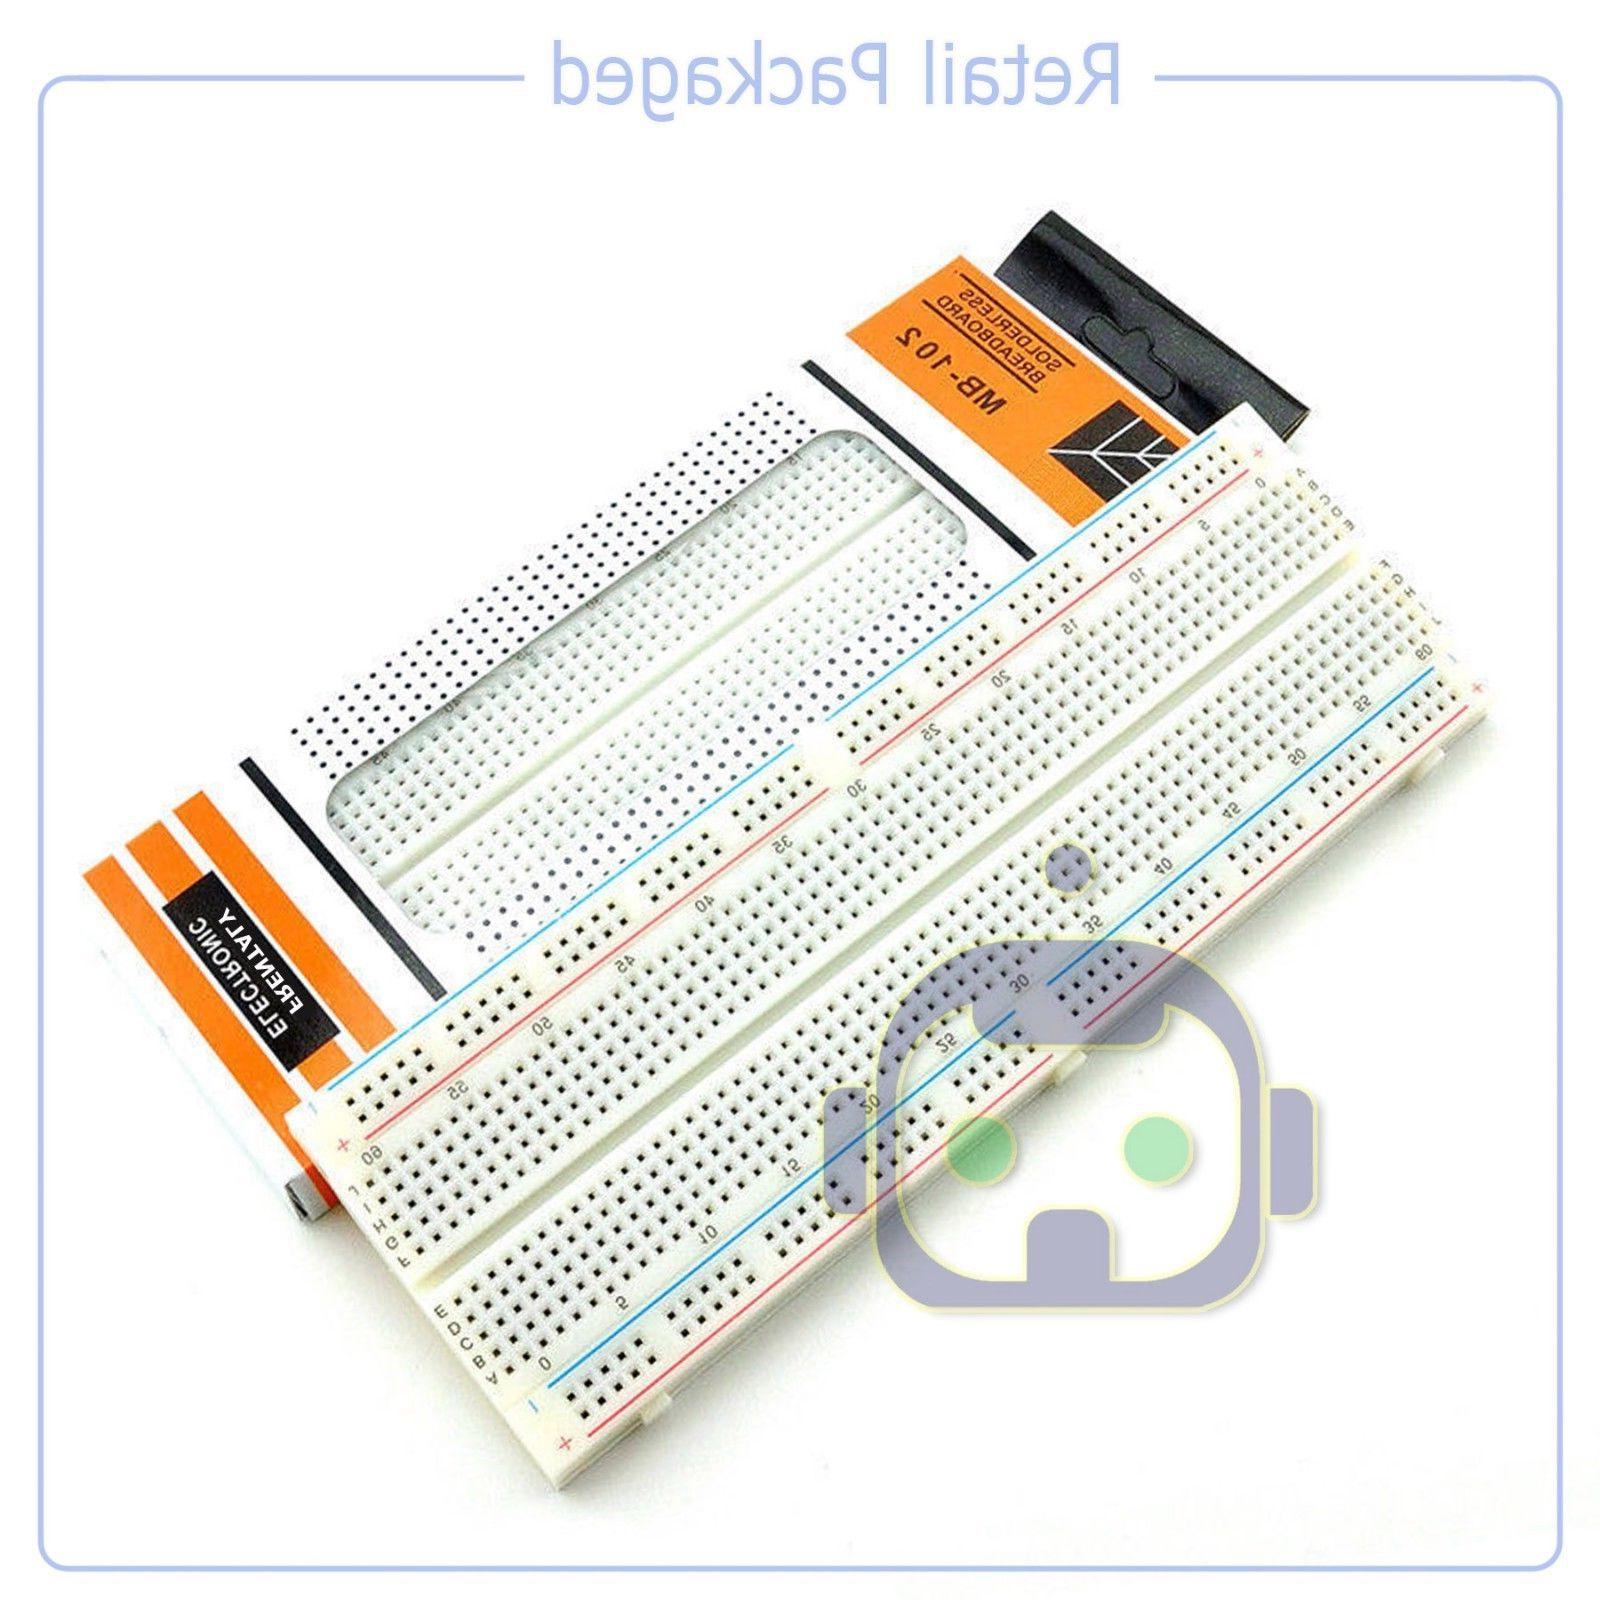 Arduino Uno Starter Kit 400 Jumpers, USB Cables